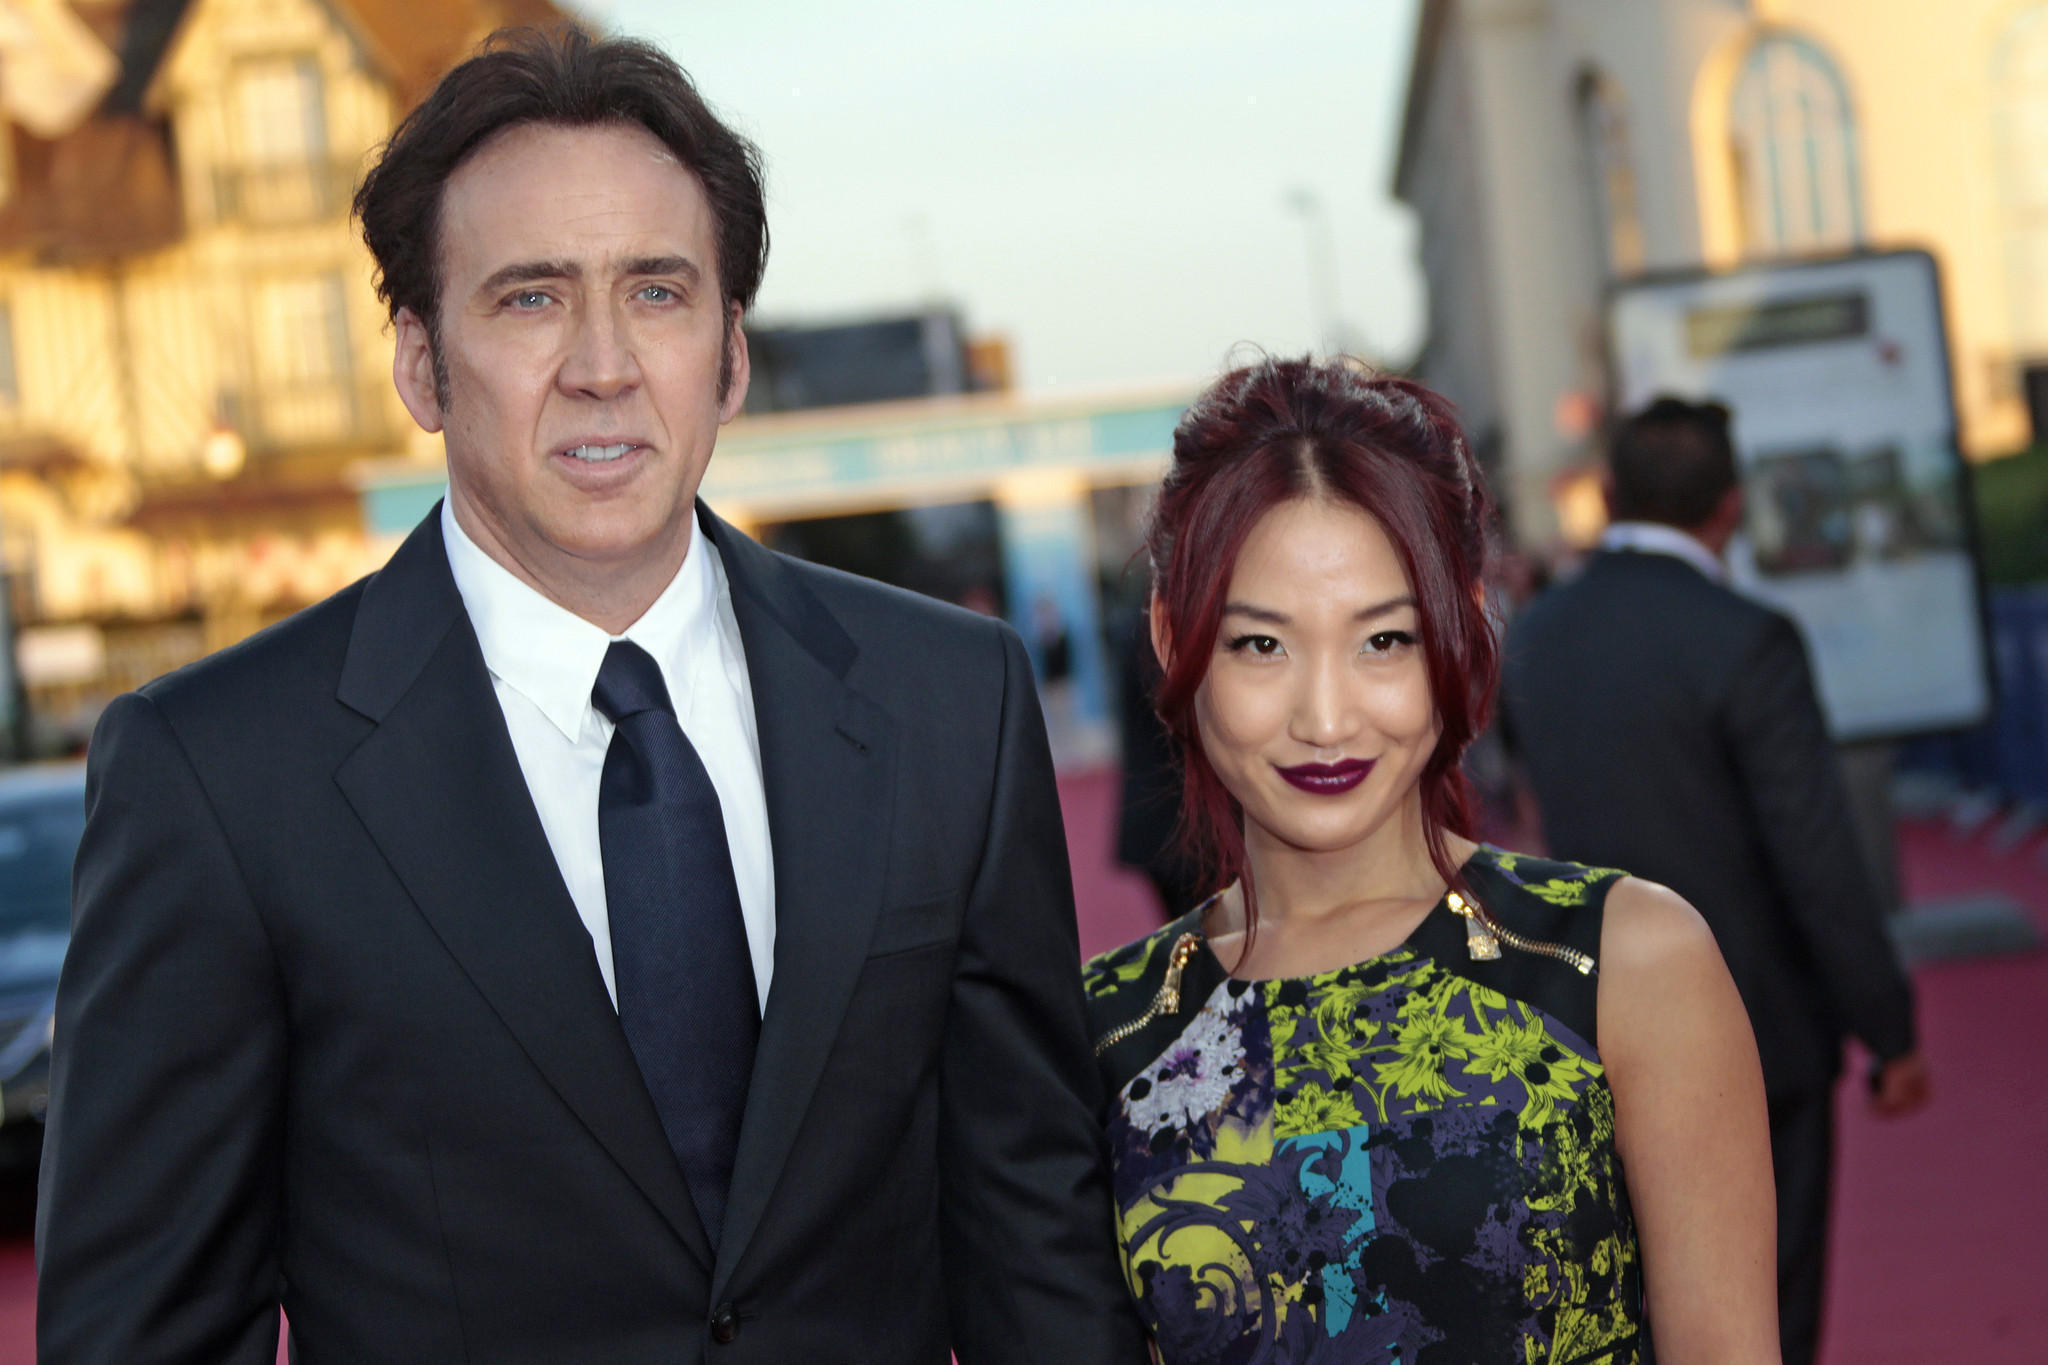 alice kim nicolas cage age difference in relationship